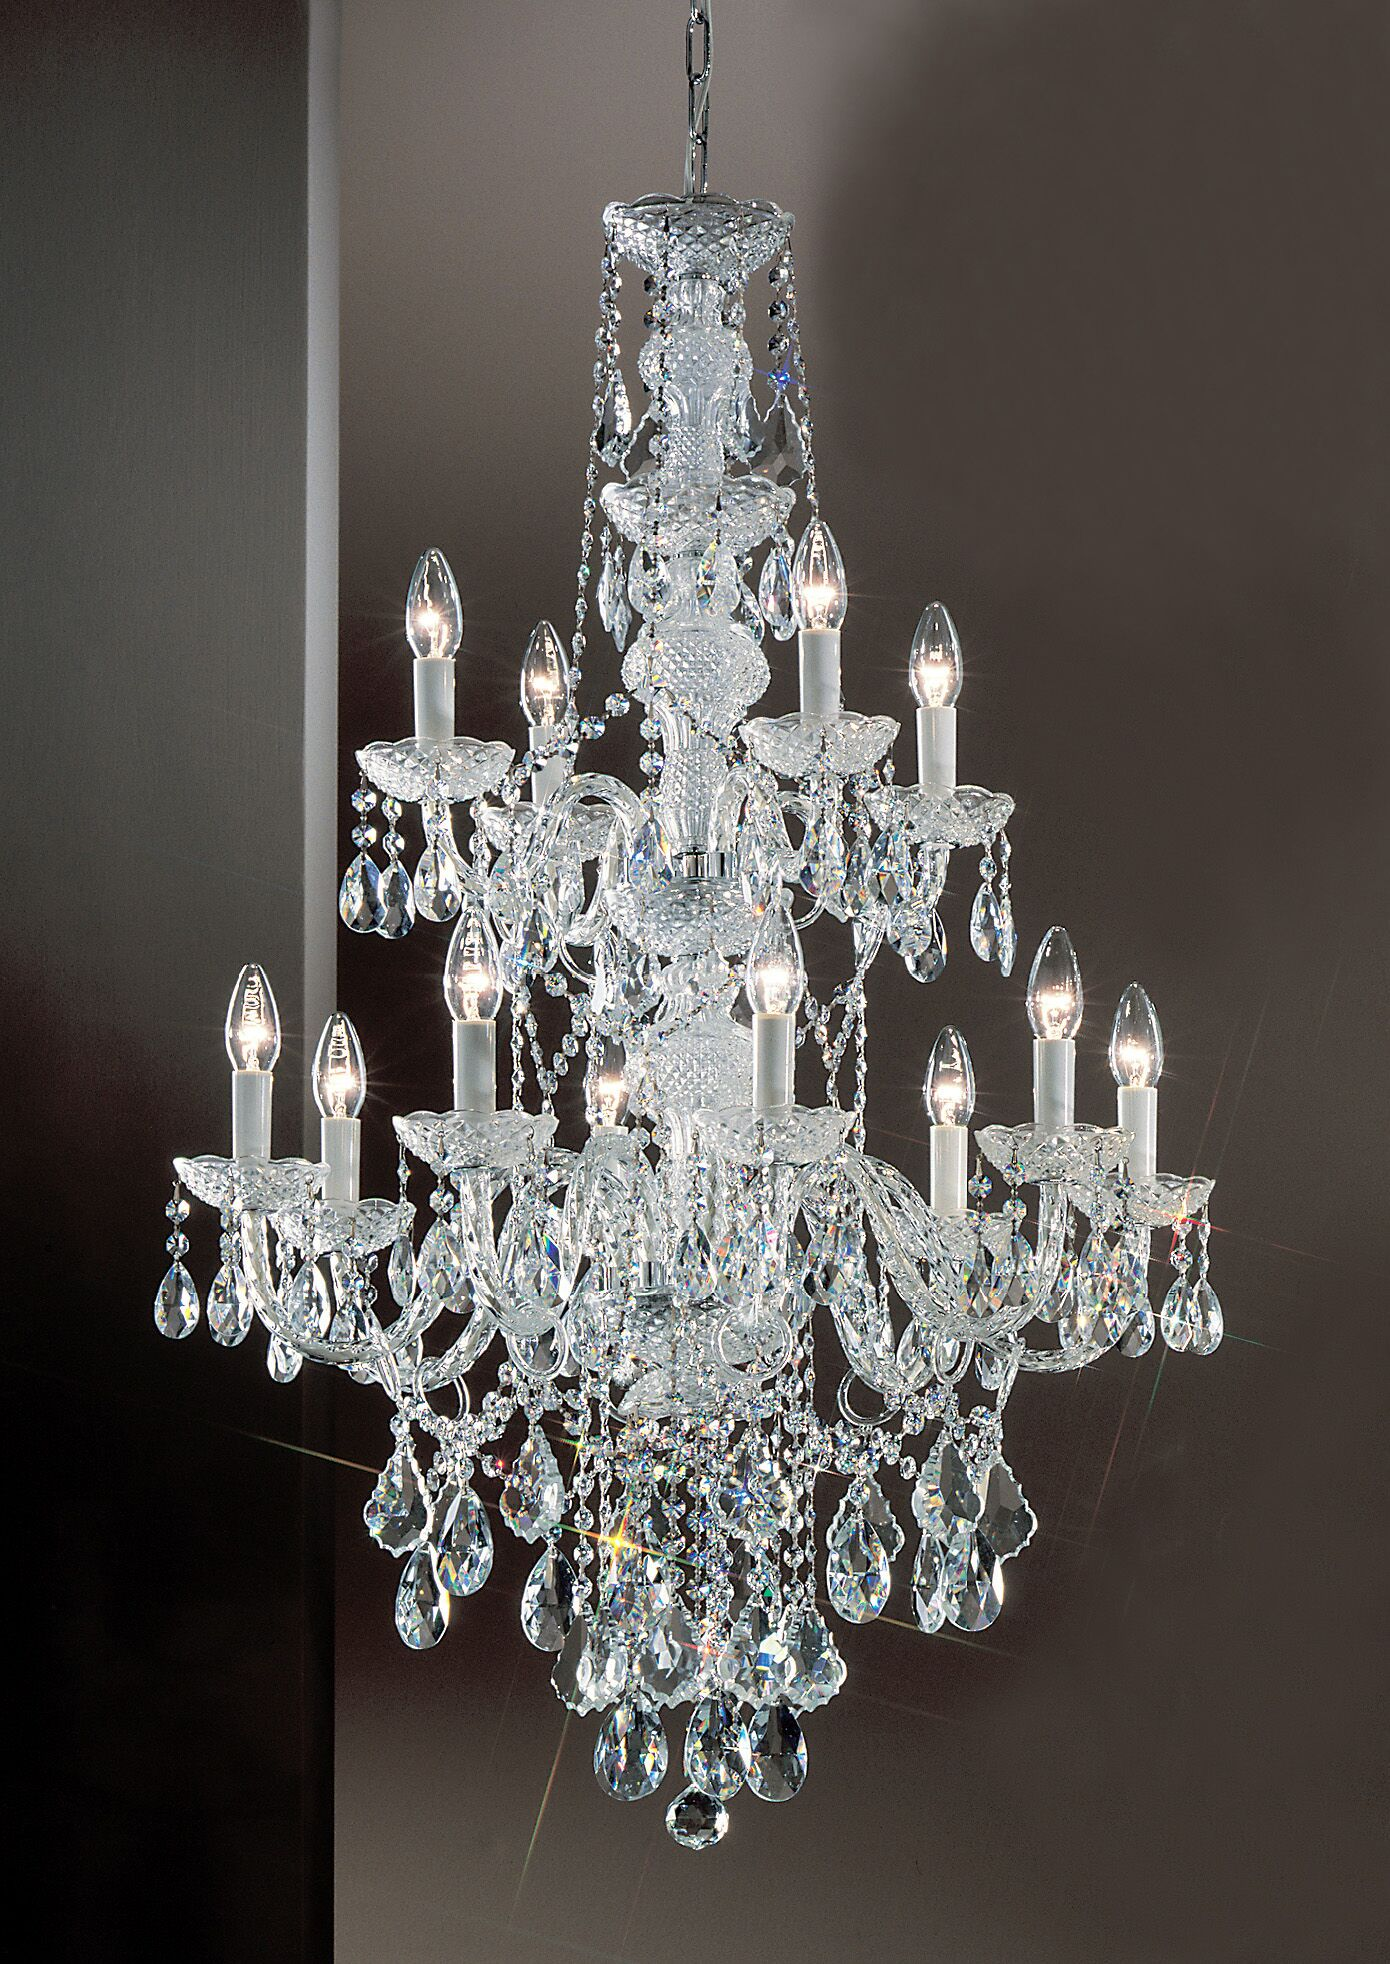 Monticello 12-Light Candle Style Chandelier Finish: Chrome, Crystal Trim: Swarovski Spectra